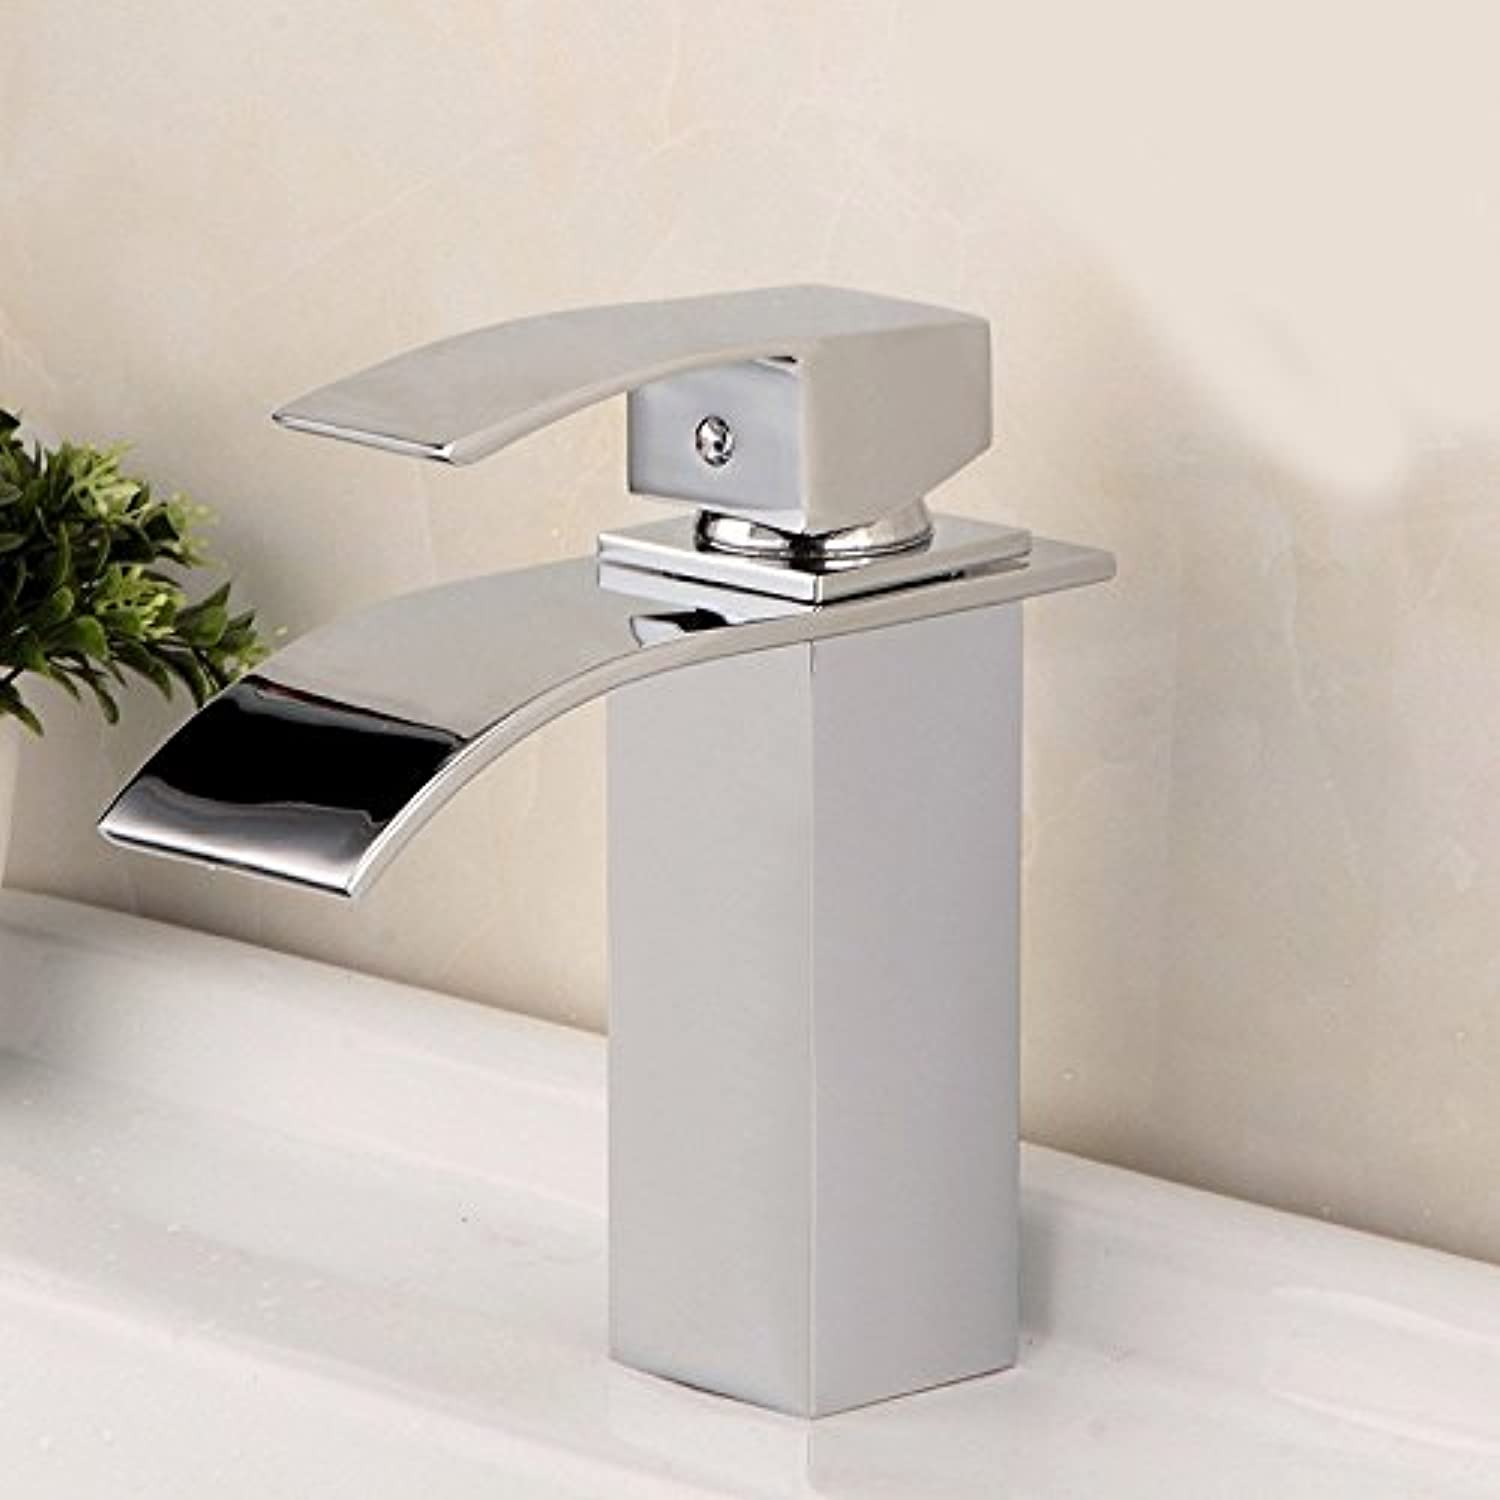 Hlluya Professional Sink Mixer Tap Kitchen Faucet Basin cold water TAP-TAP nickel plated brass waterfall faucet sink hot and cold